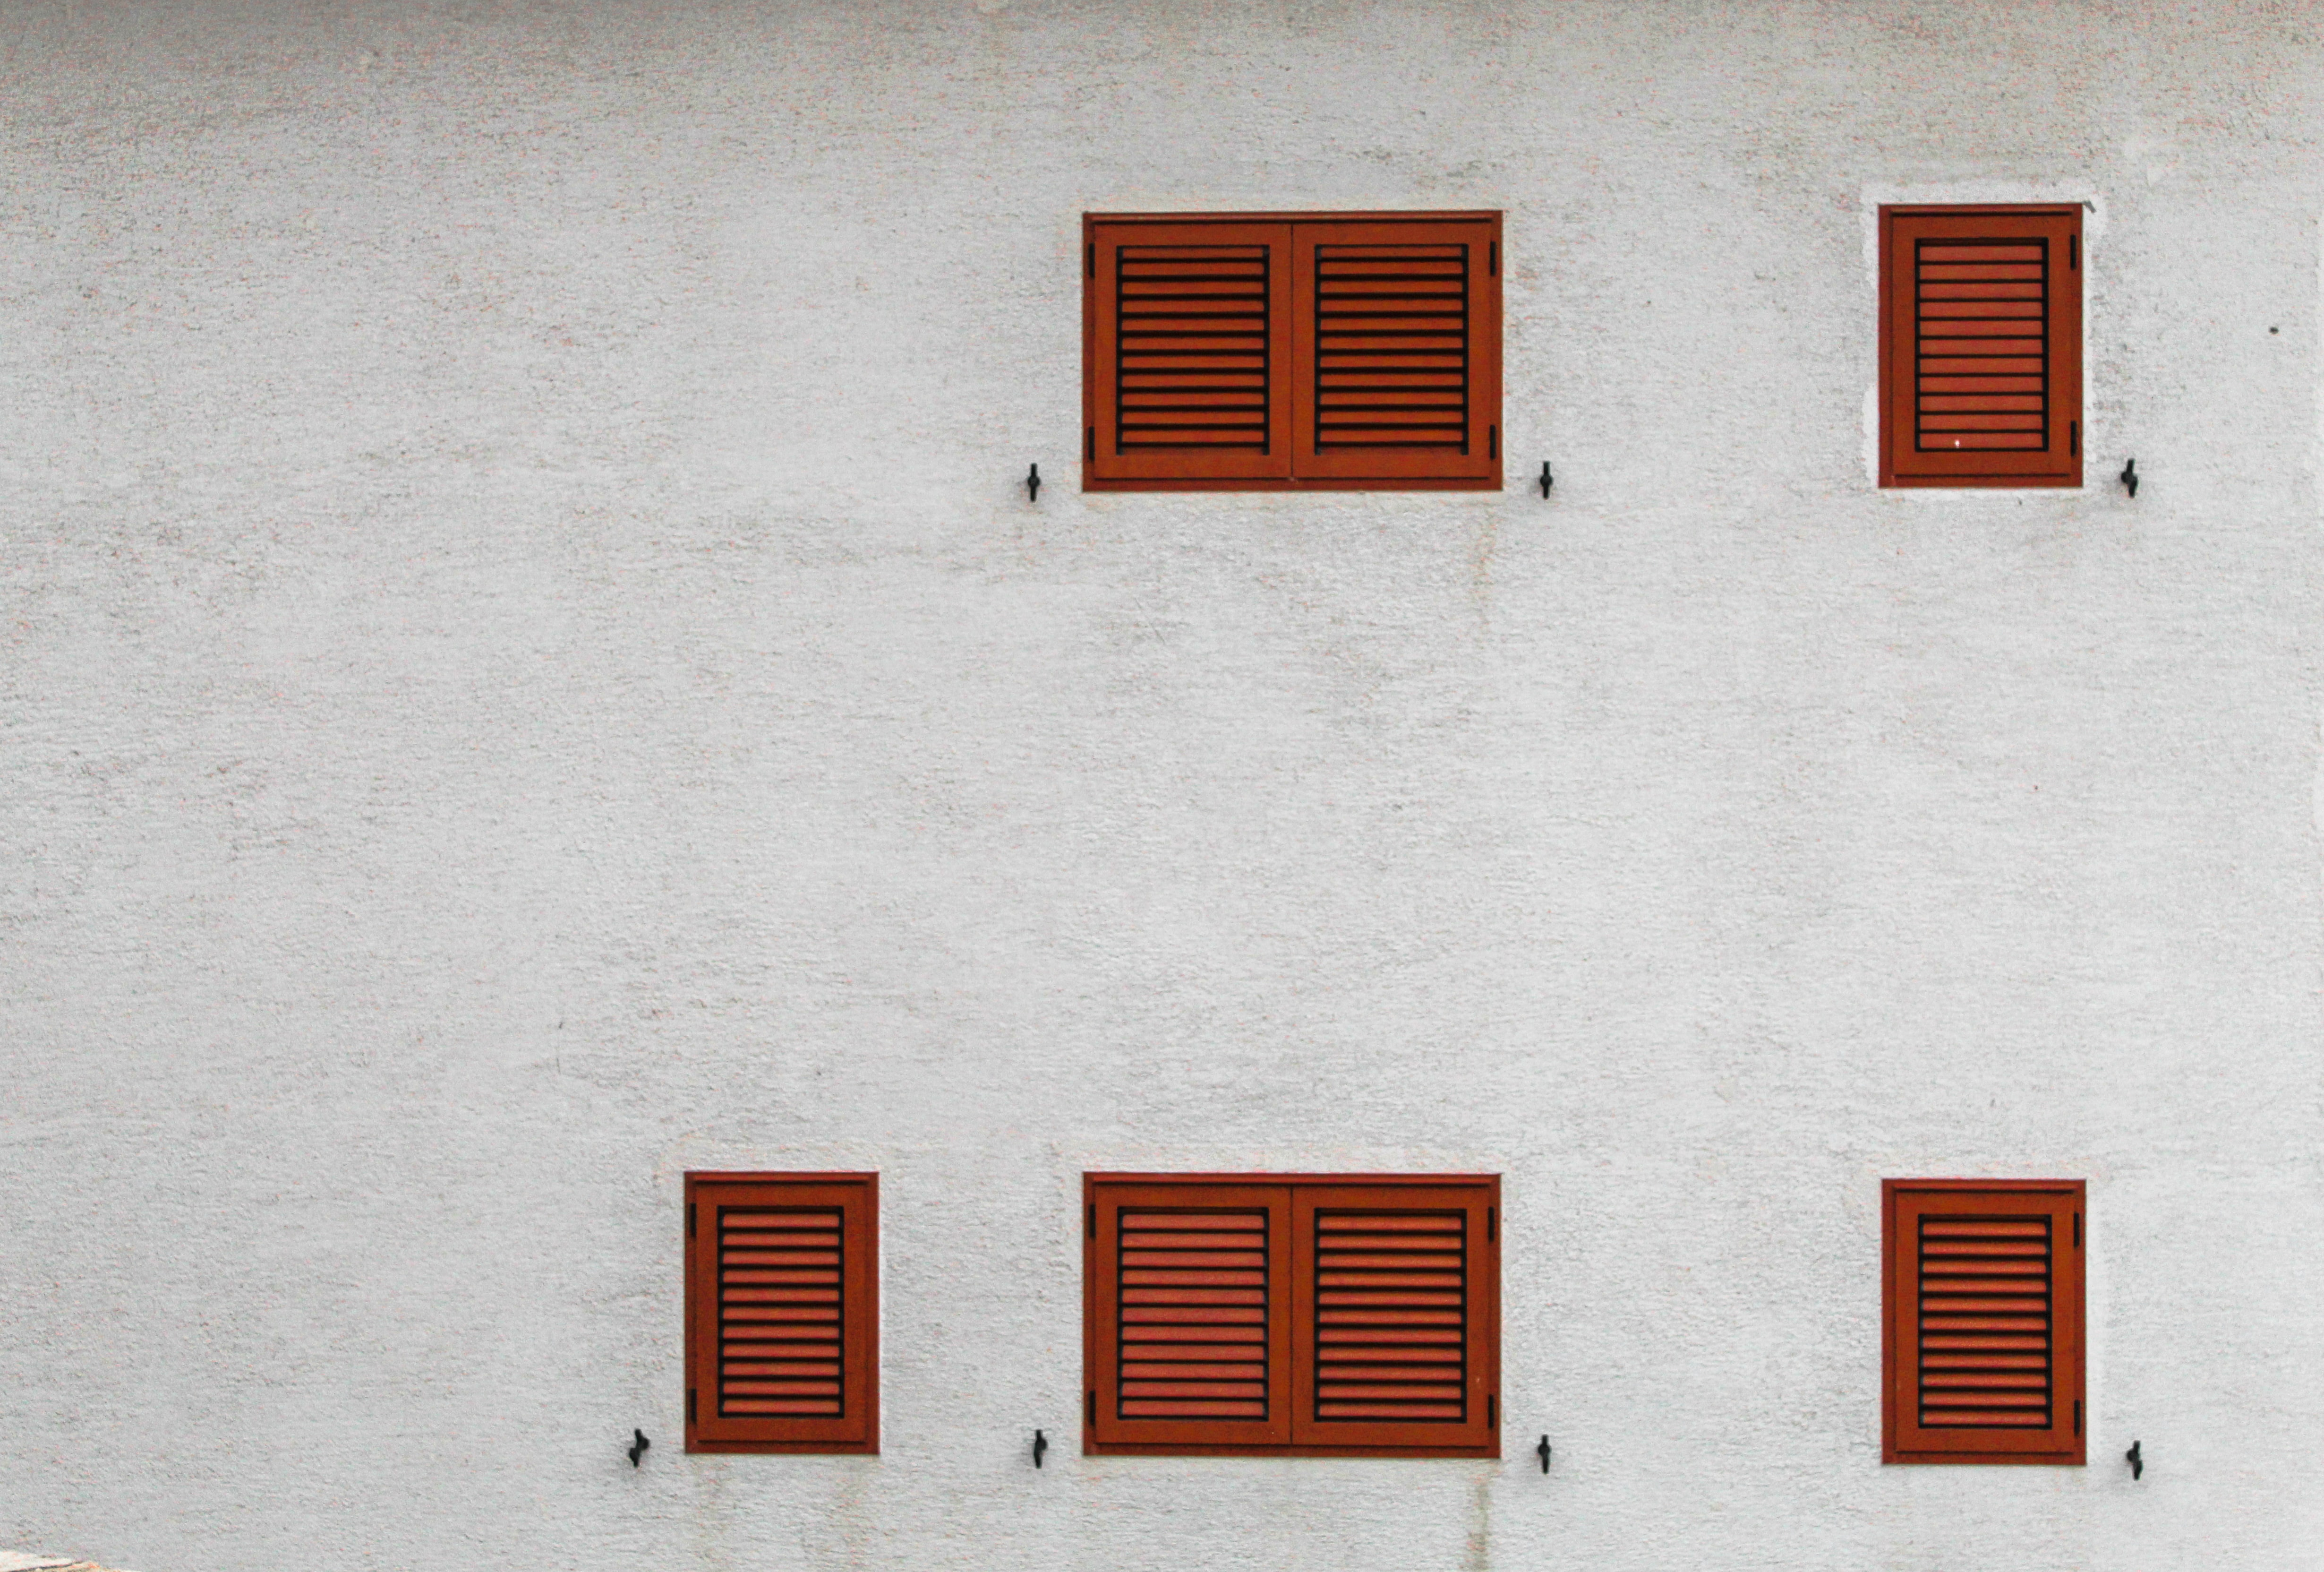 gray building with brown louvered windows